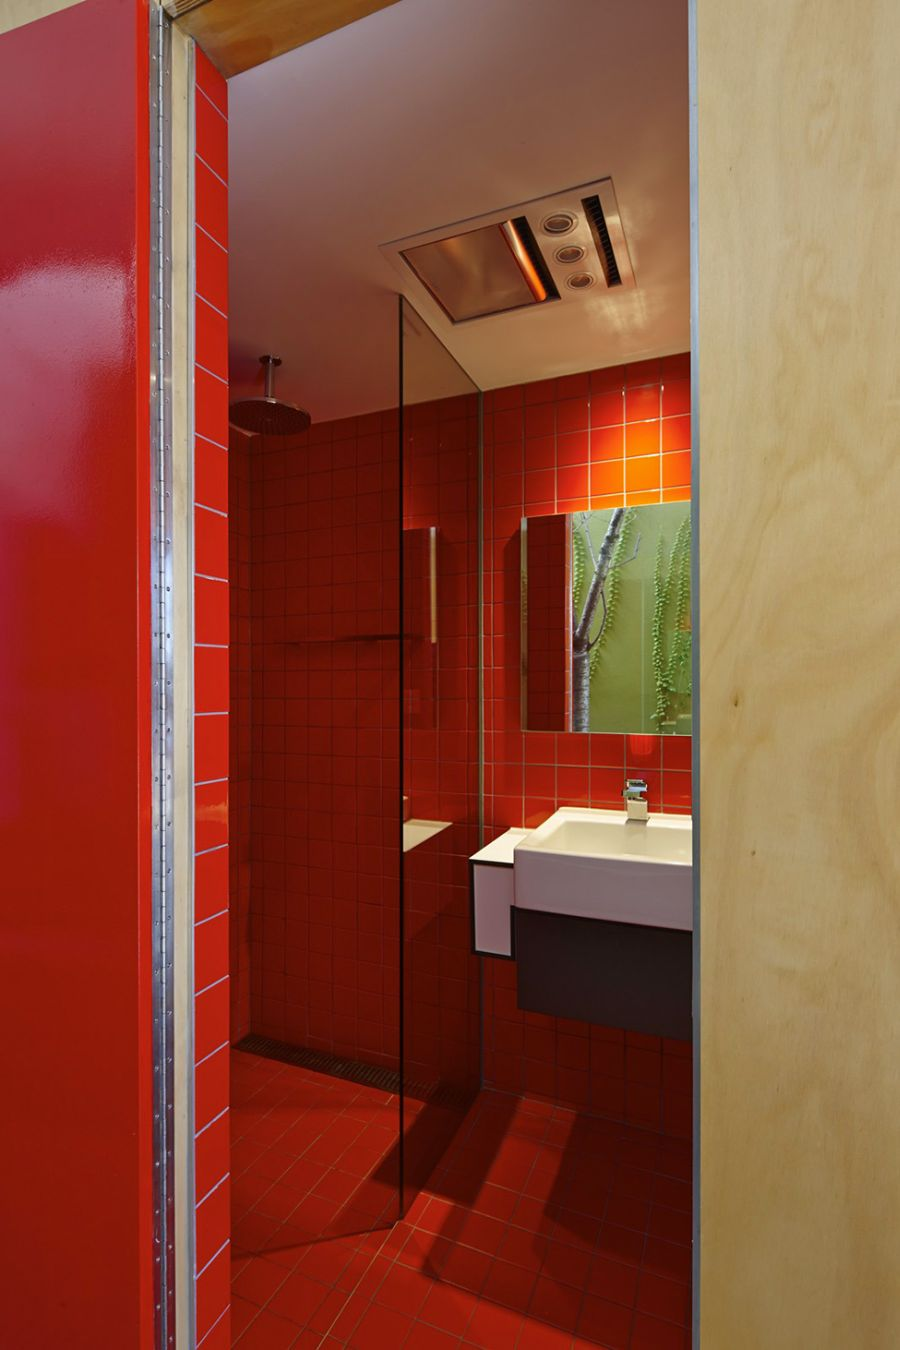 Bathroom with red tiles